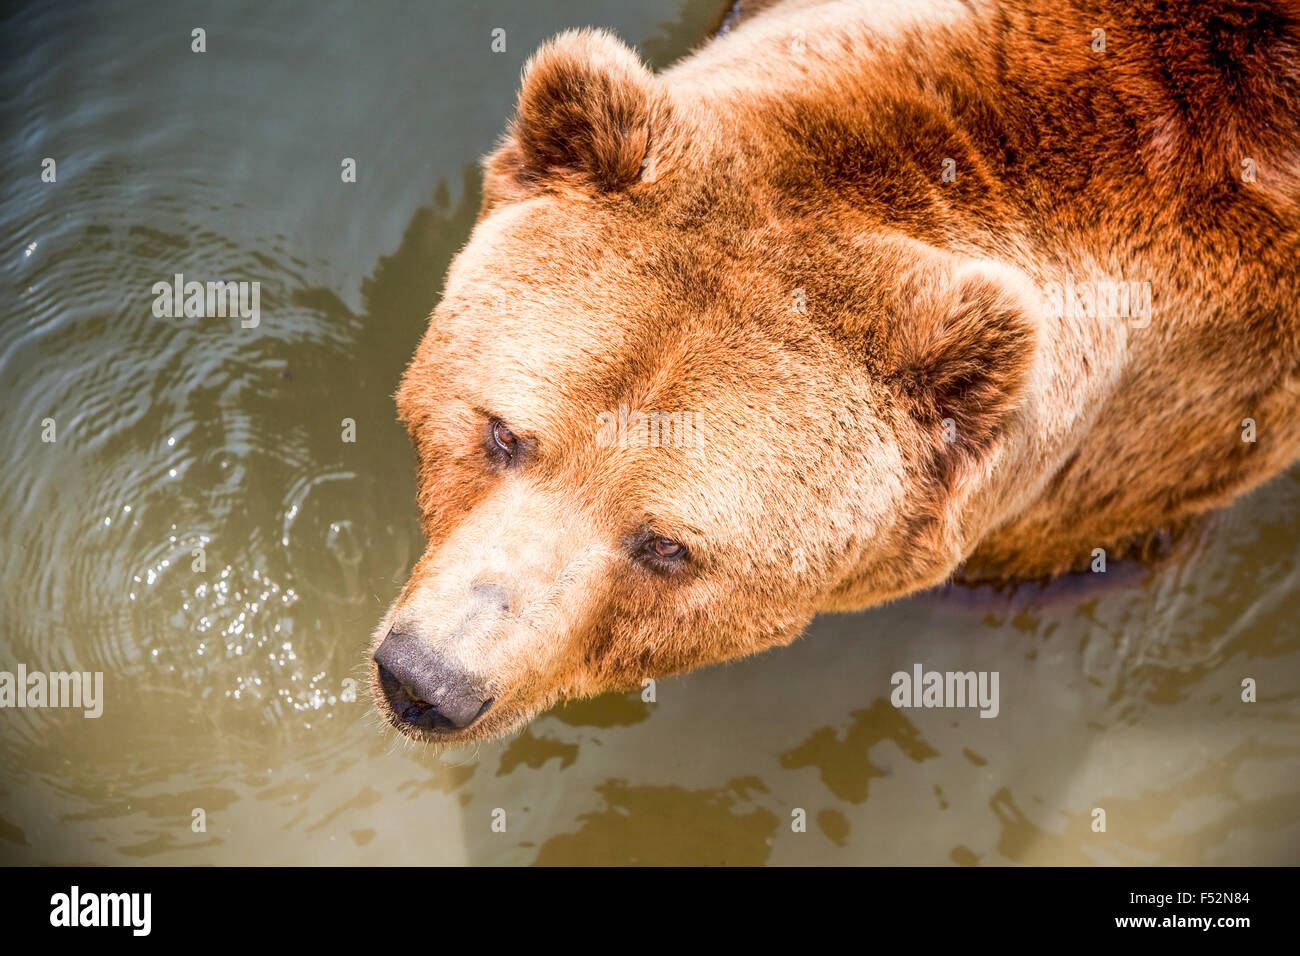 Large Brown Bear Swimming In A Hot Summer Day - Stock Image